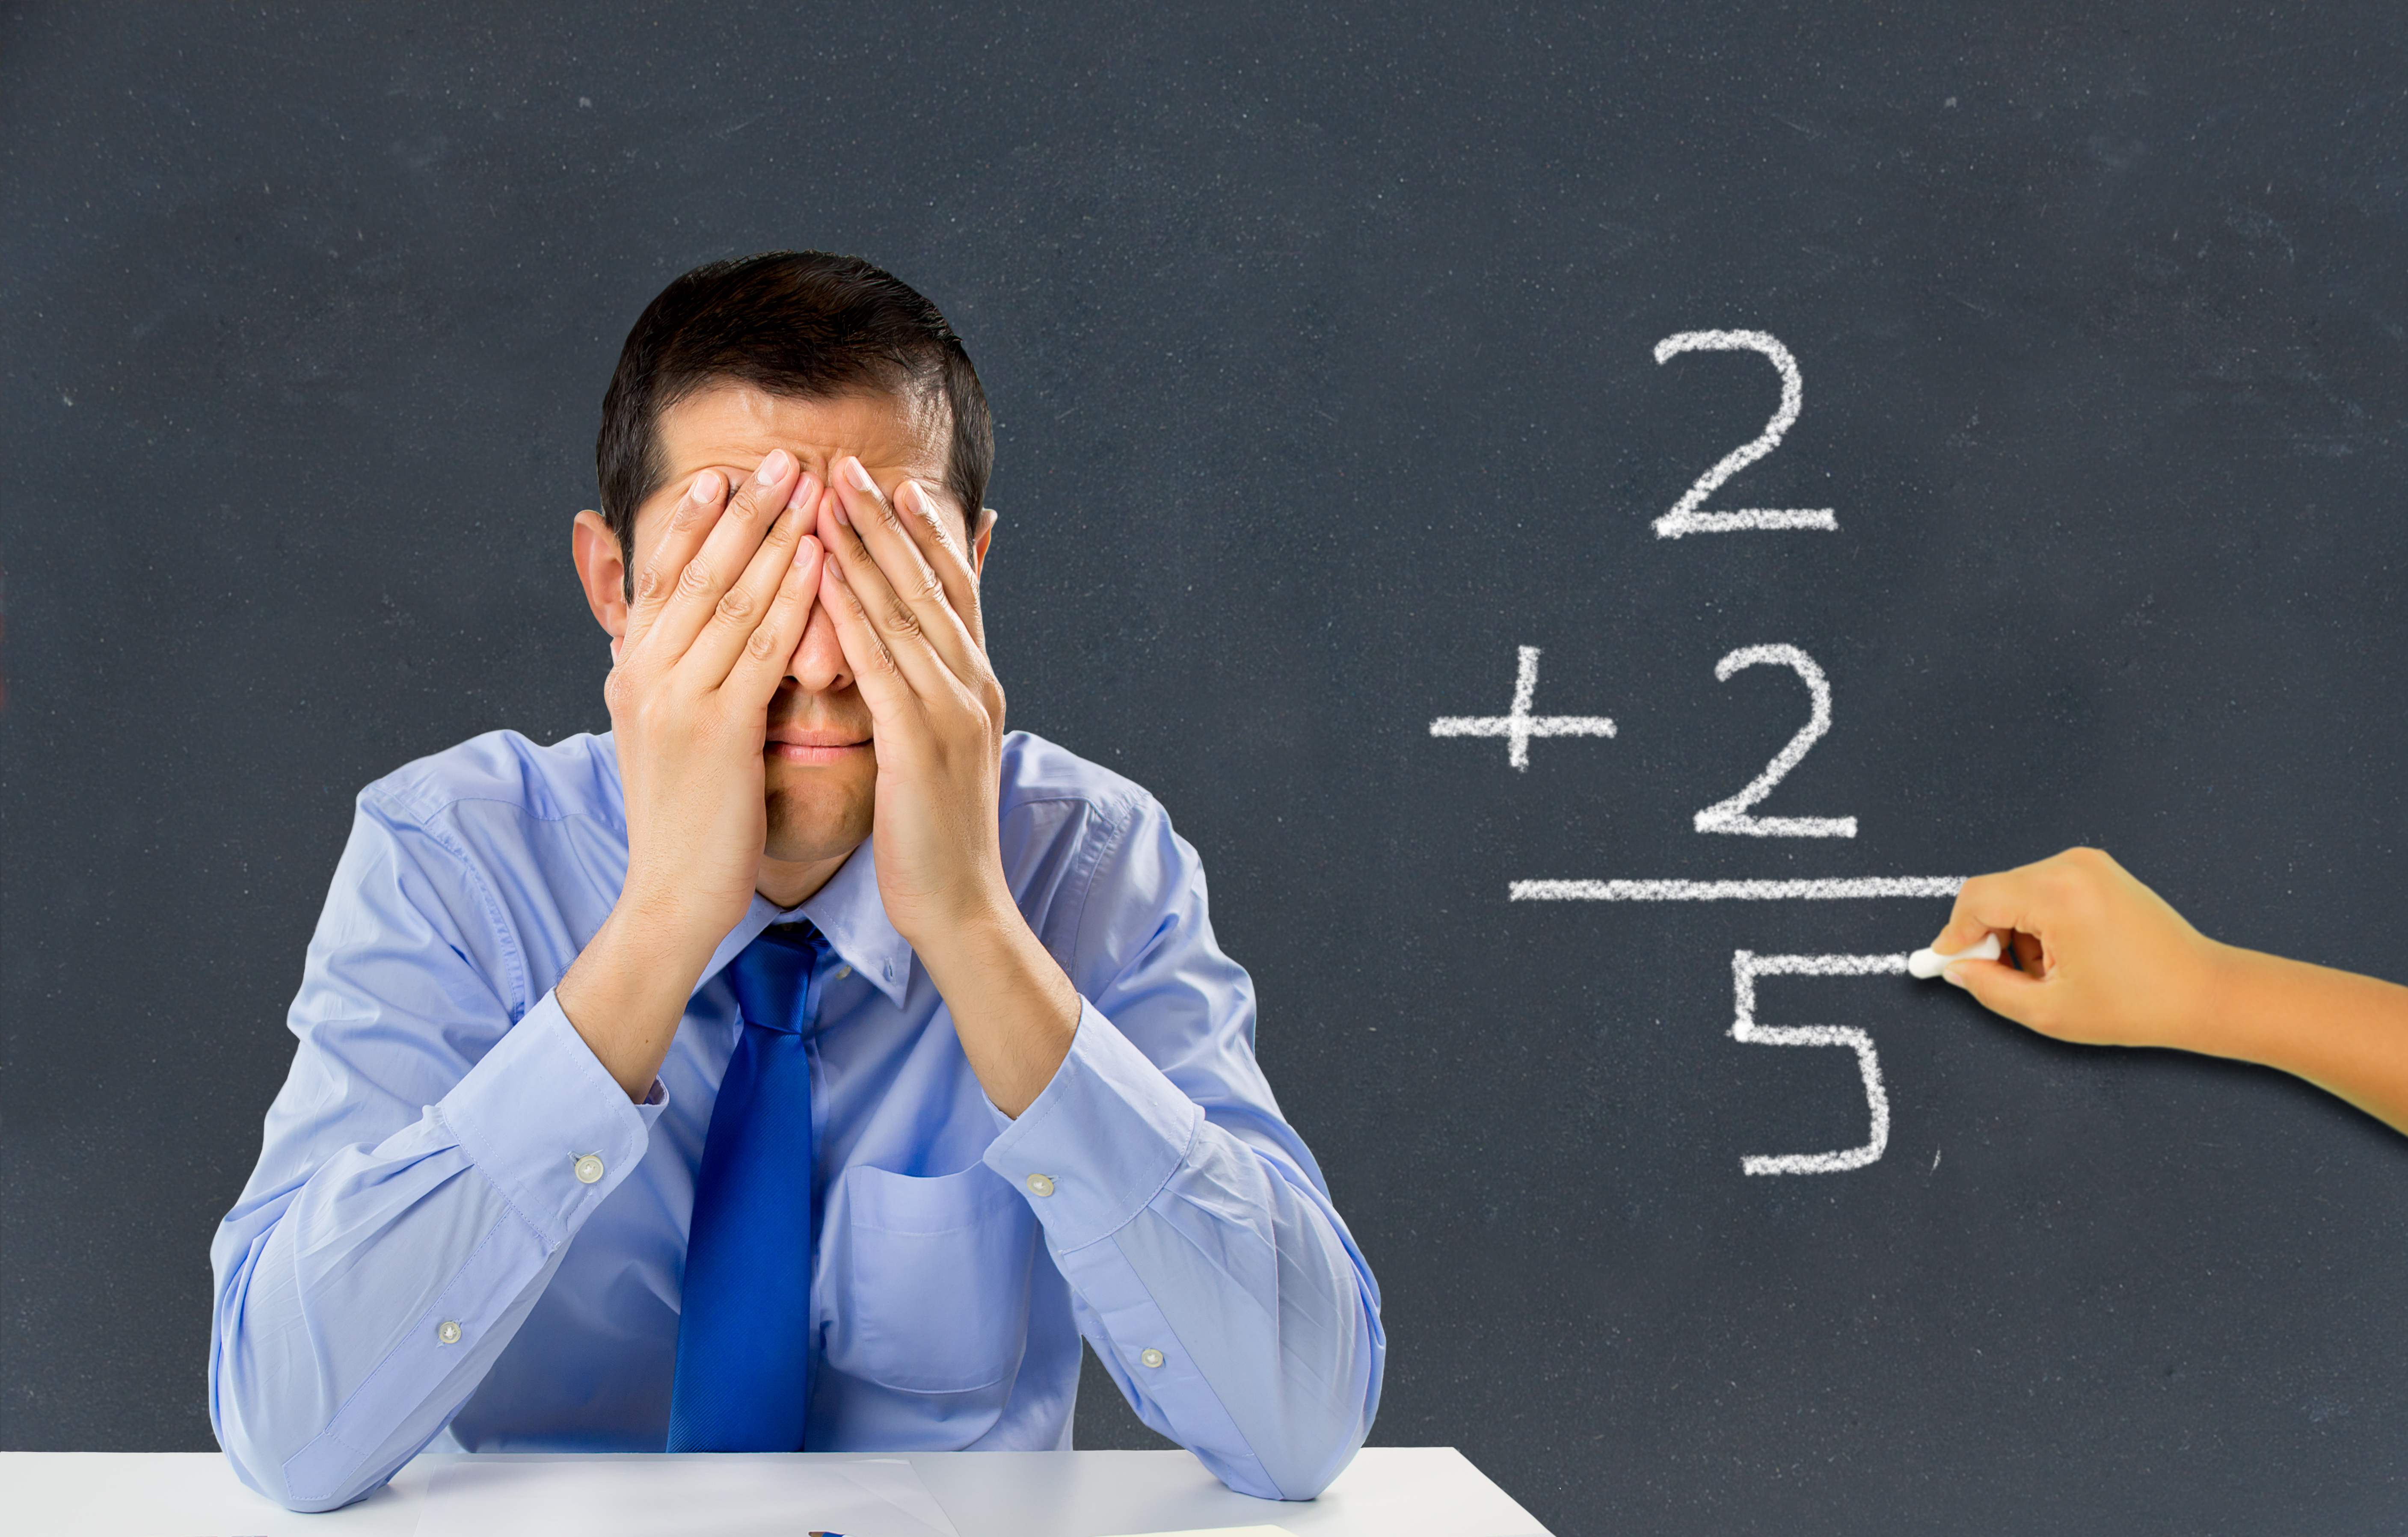 He stressed teacher in a class with a child on the board making a mathematical calculation wrong